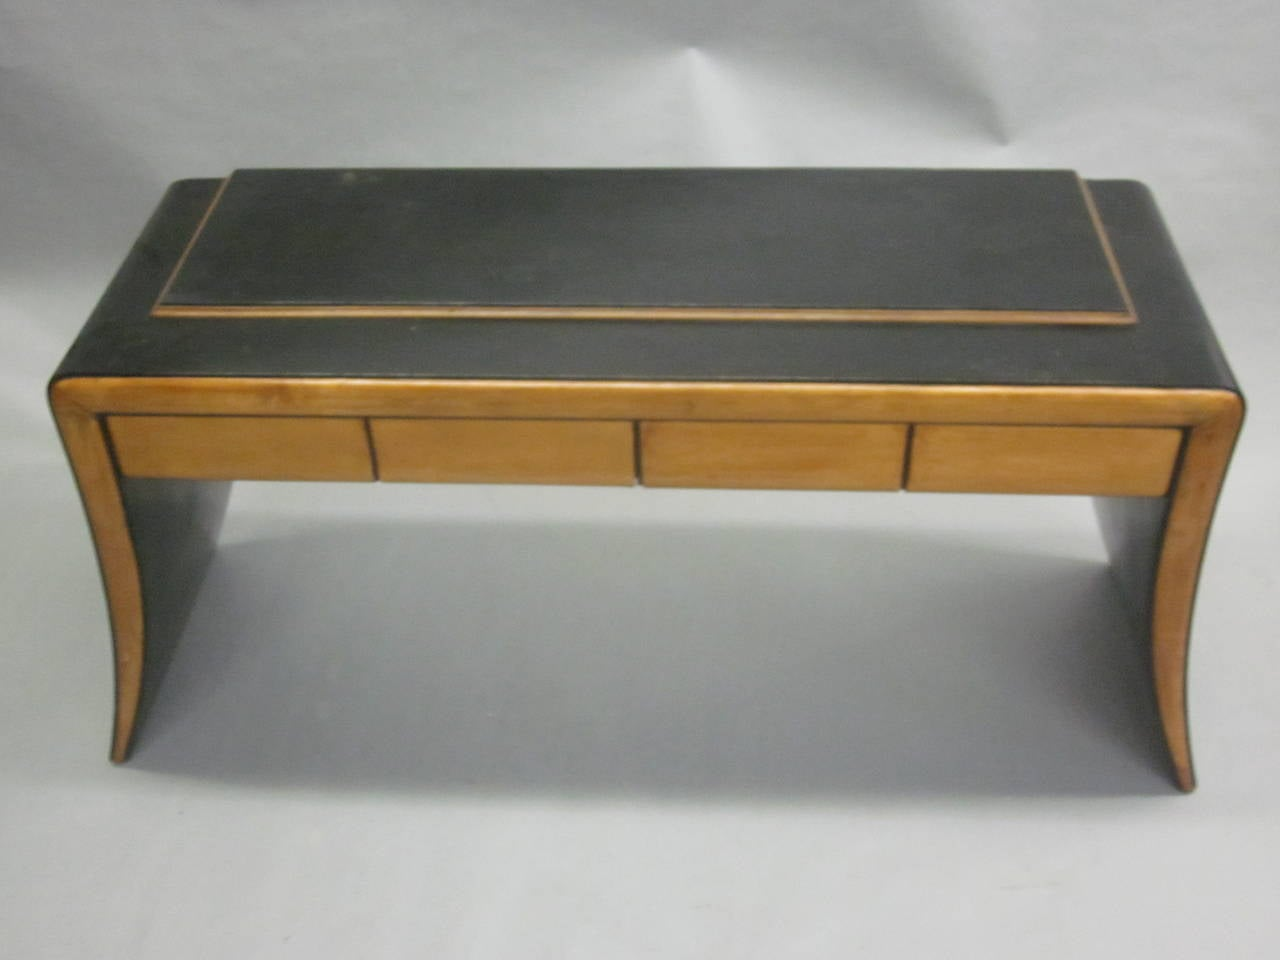 Italian late Art Deco / modern neoclassical vanity / sofa table or console by Paolo Buffa in light and ebonized woods. 